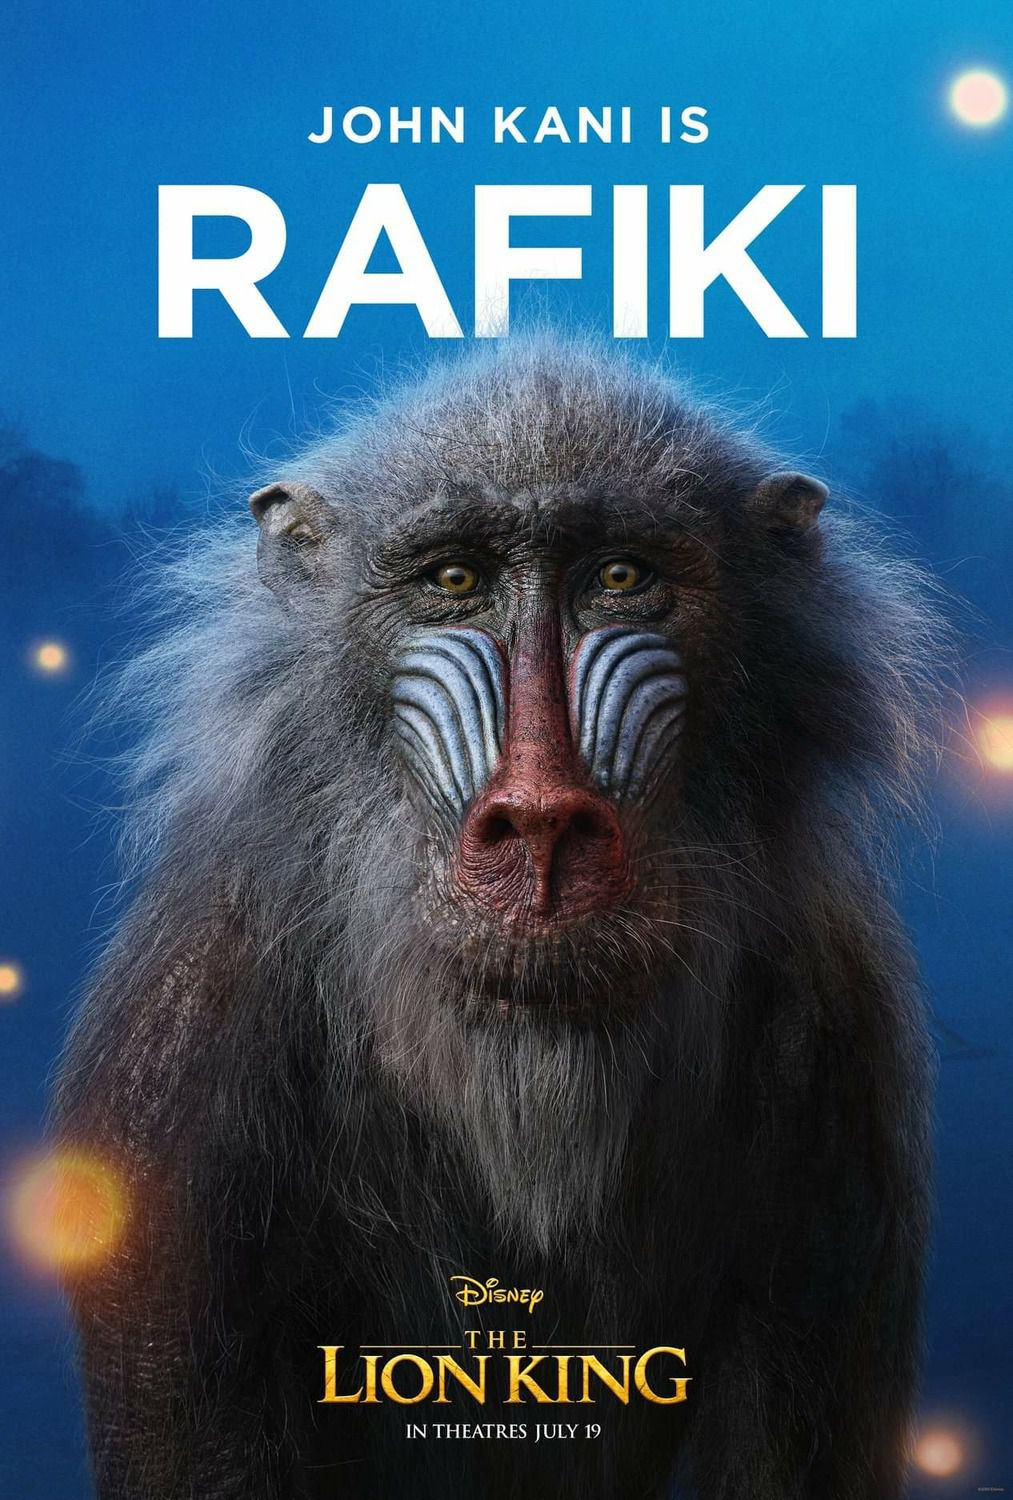 John Kani is Rafiki